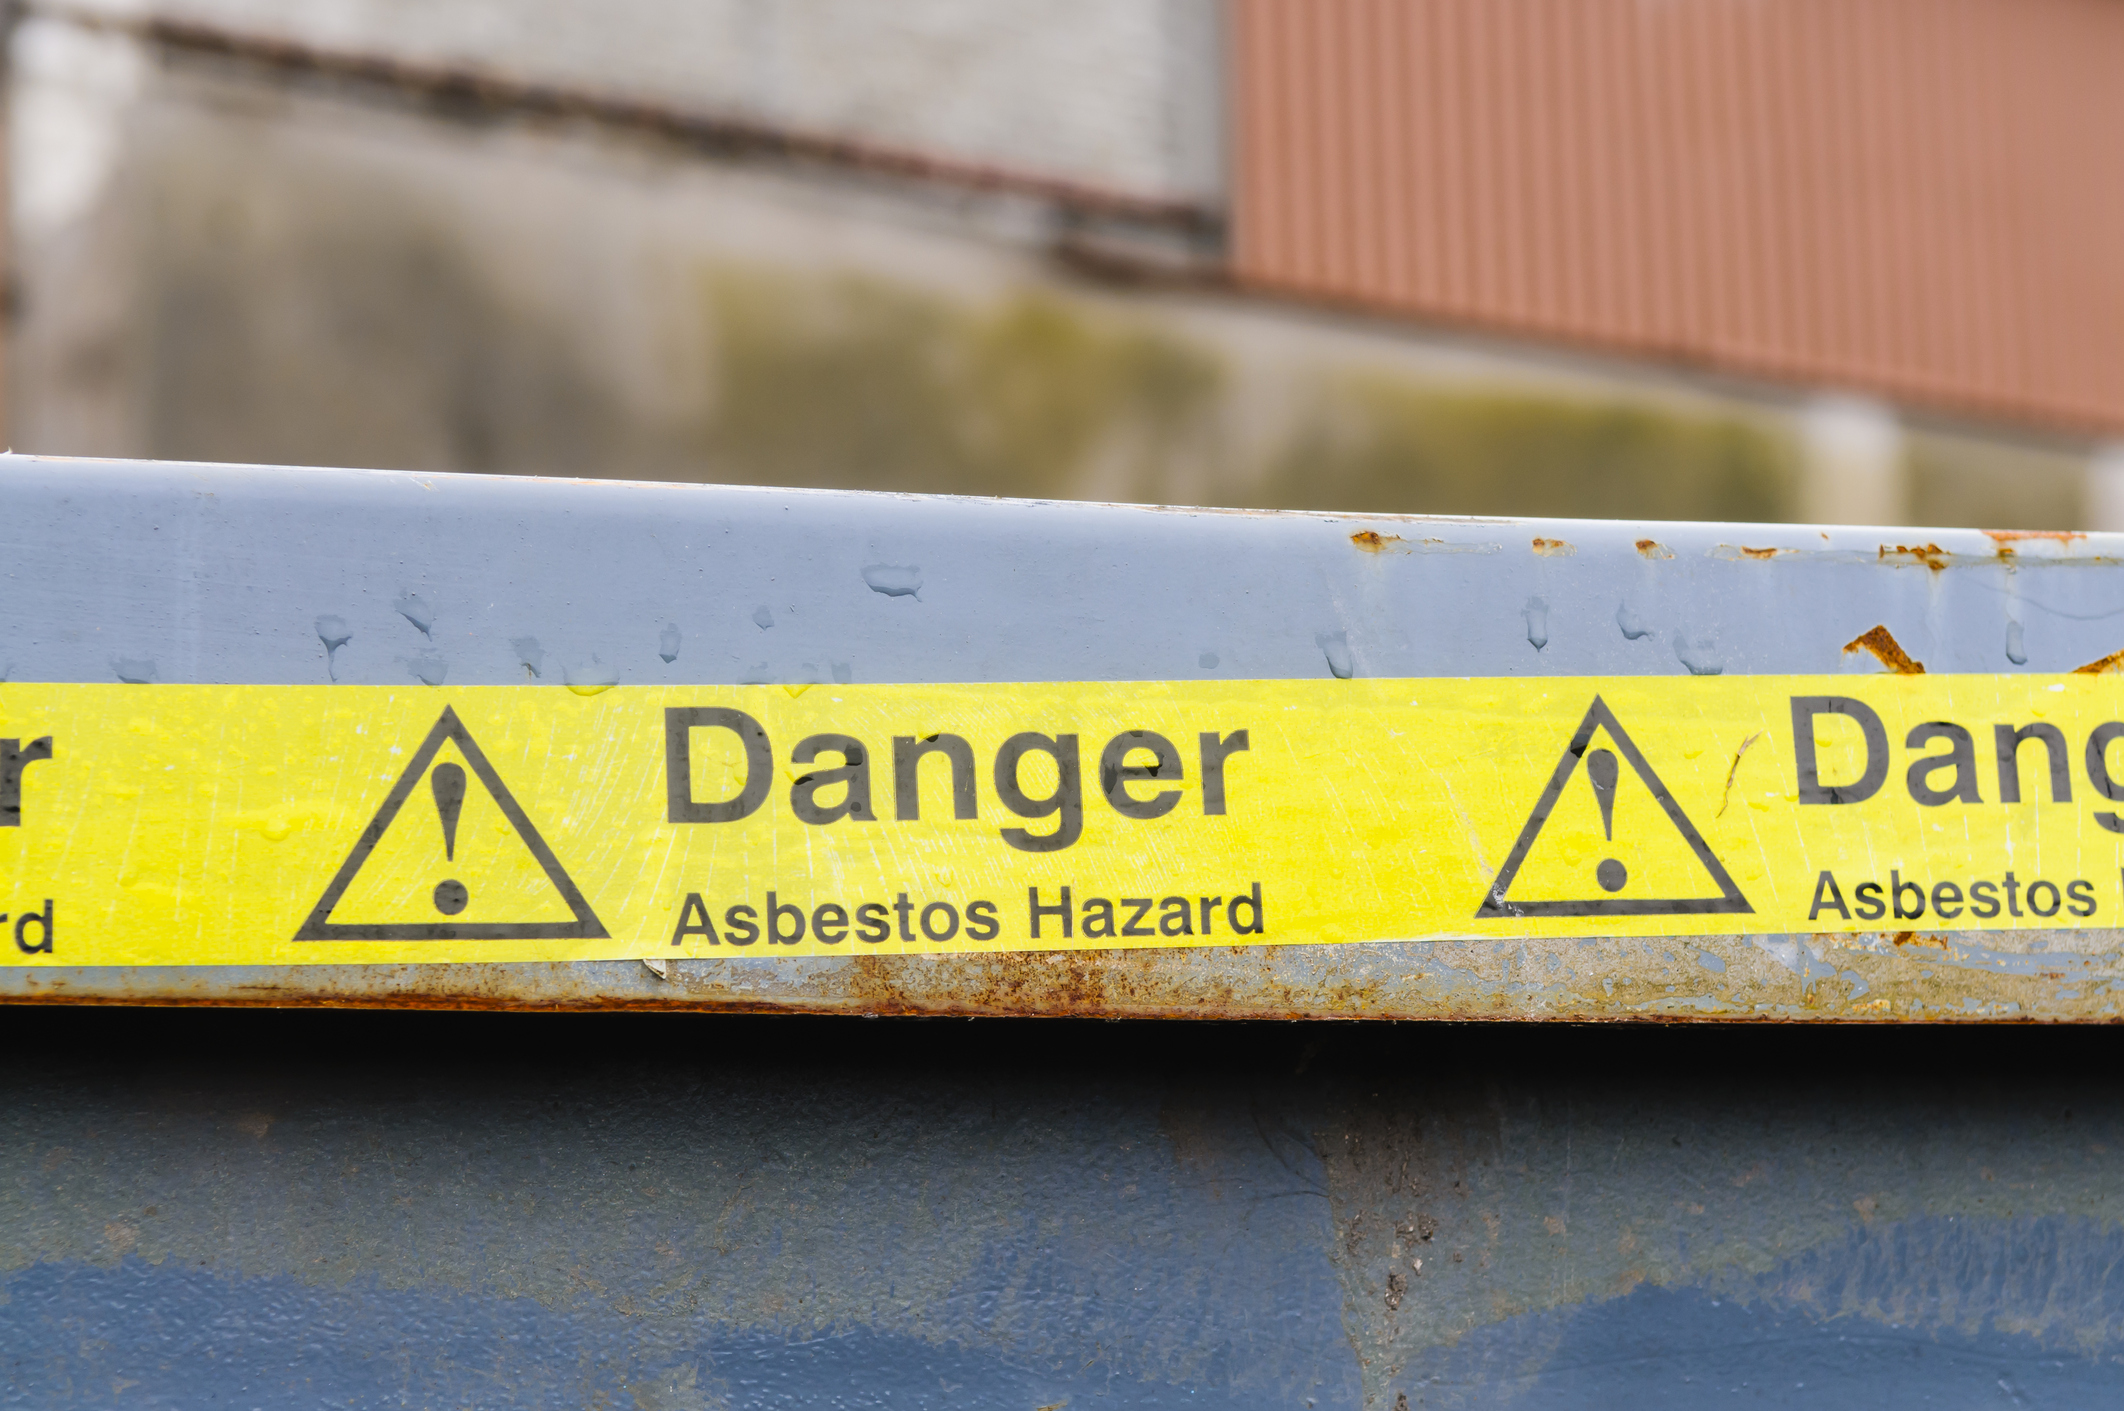 All types of asbestos fibers are known to cause serious health hazards in humans. (Stock image).